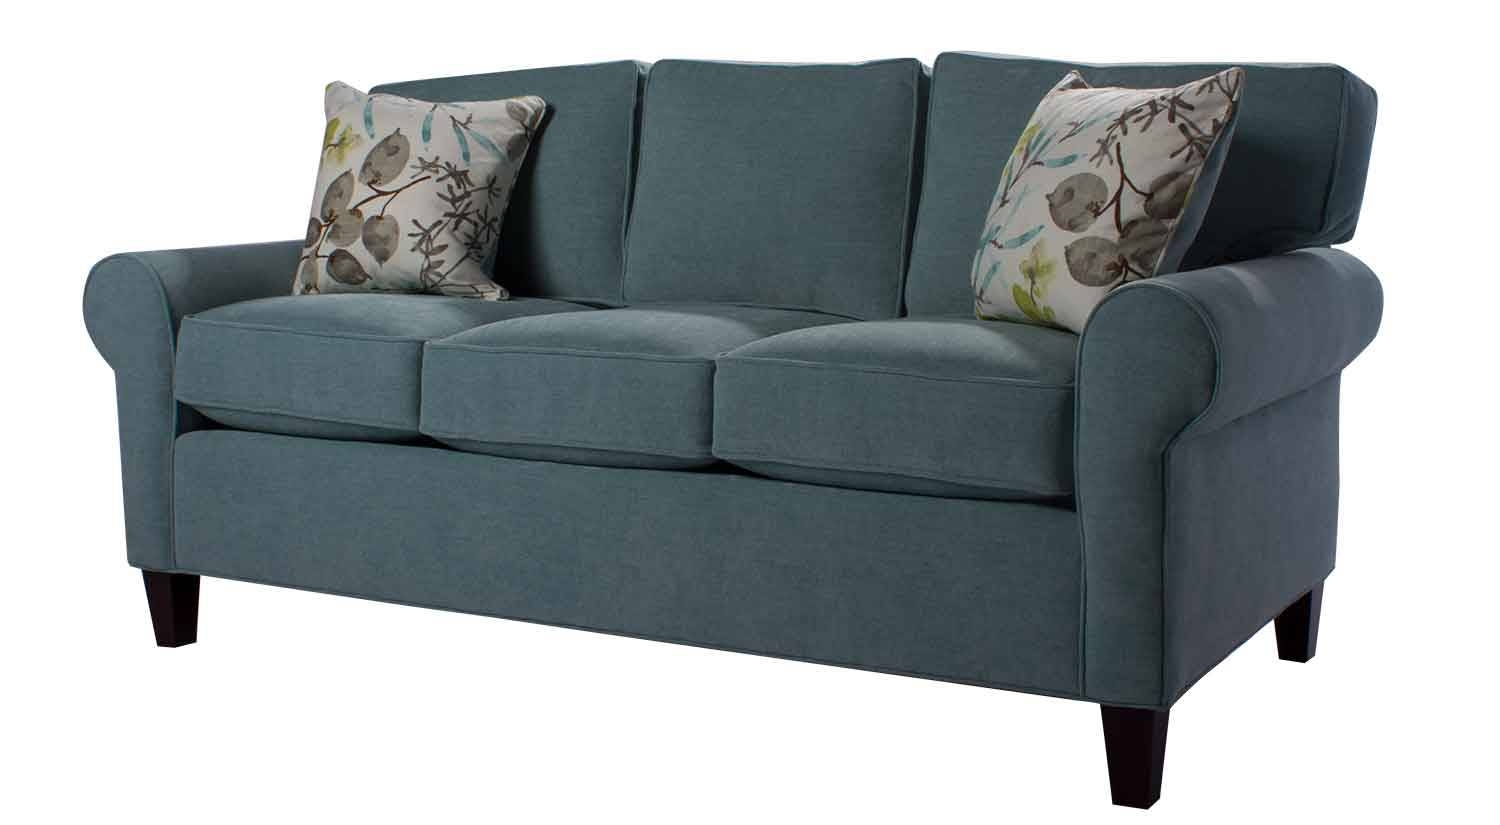 Circle Furniture - Copley Sofa | Sofas | Boston Furniture | Circle intended for Circle Sofas (Image 1 of 25)